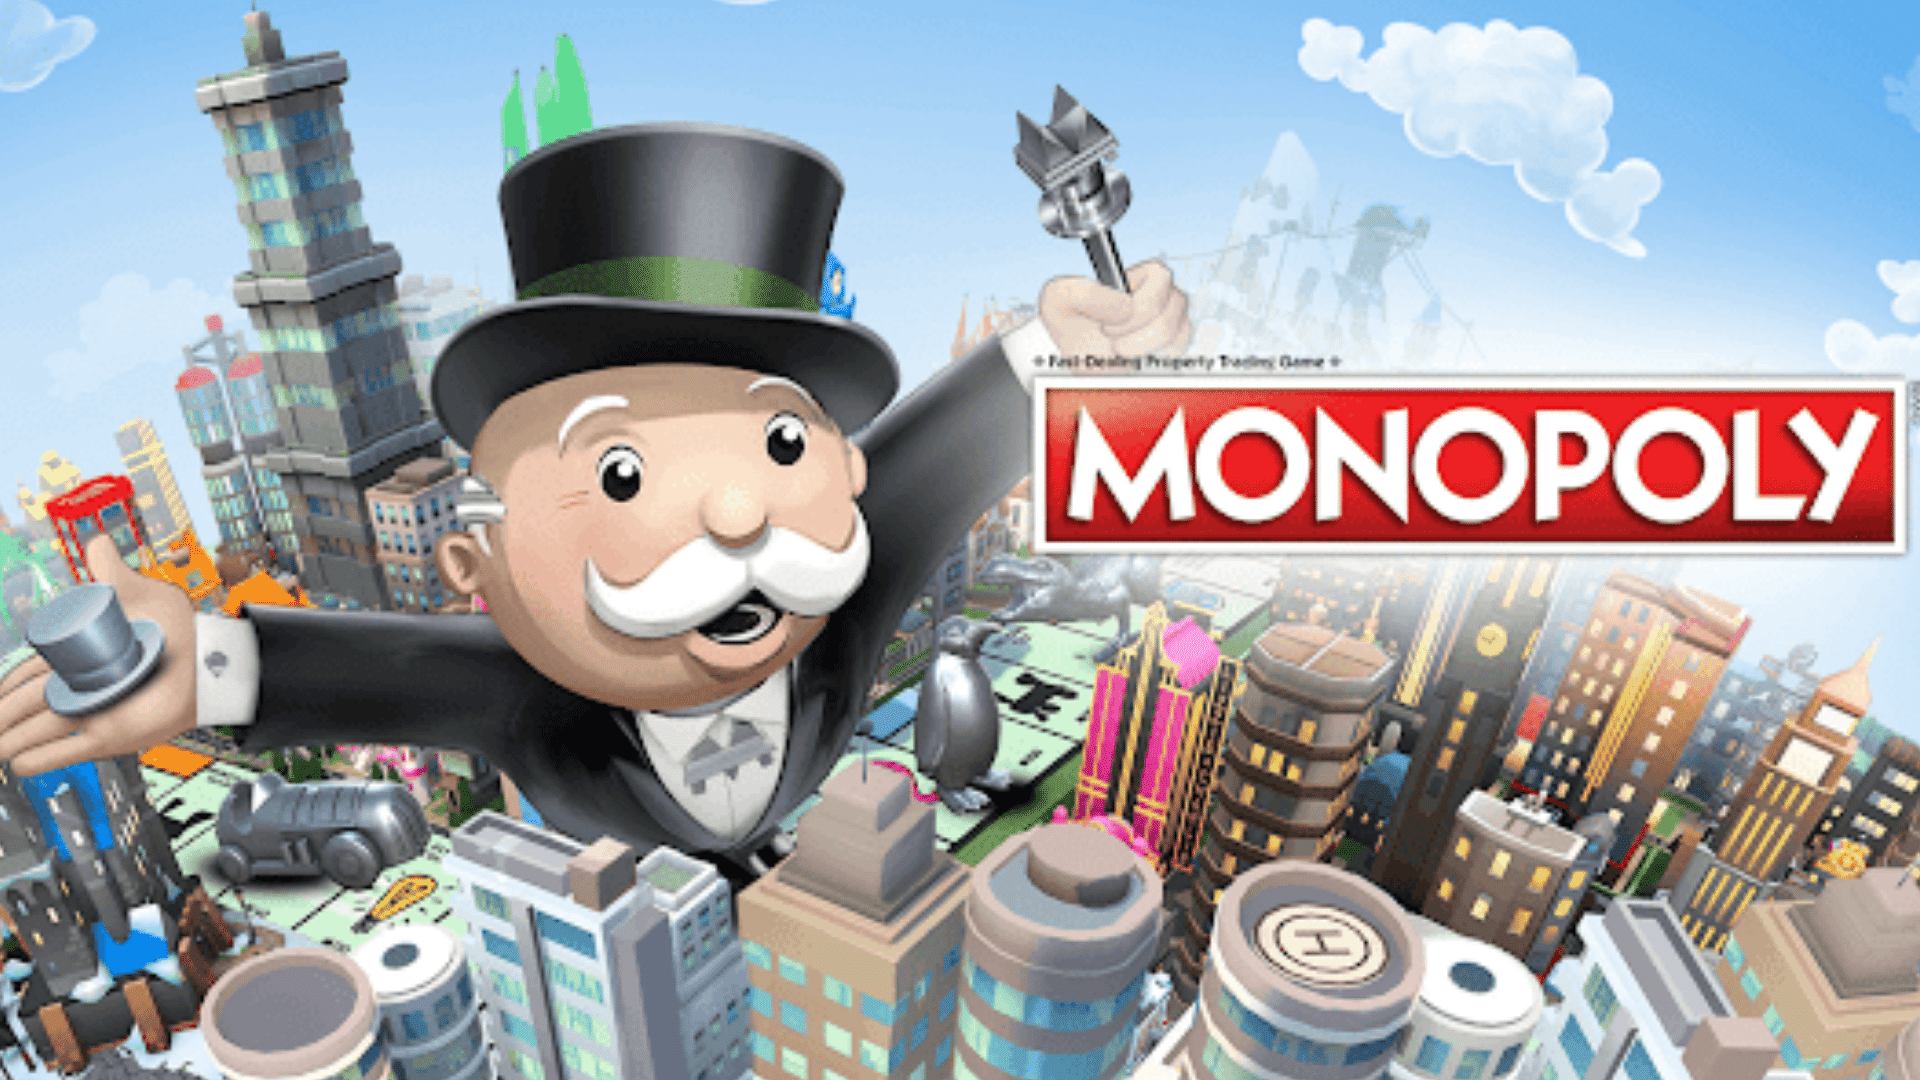 What Is Monopoly Game